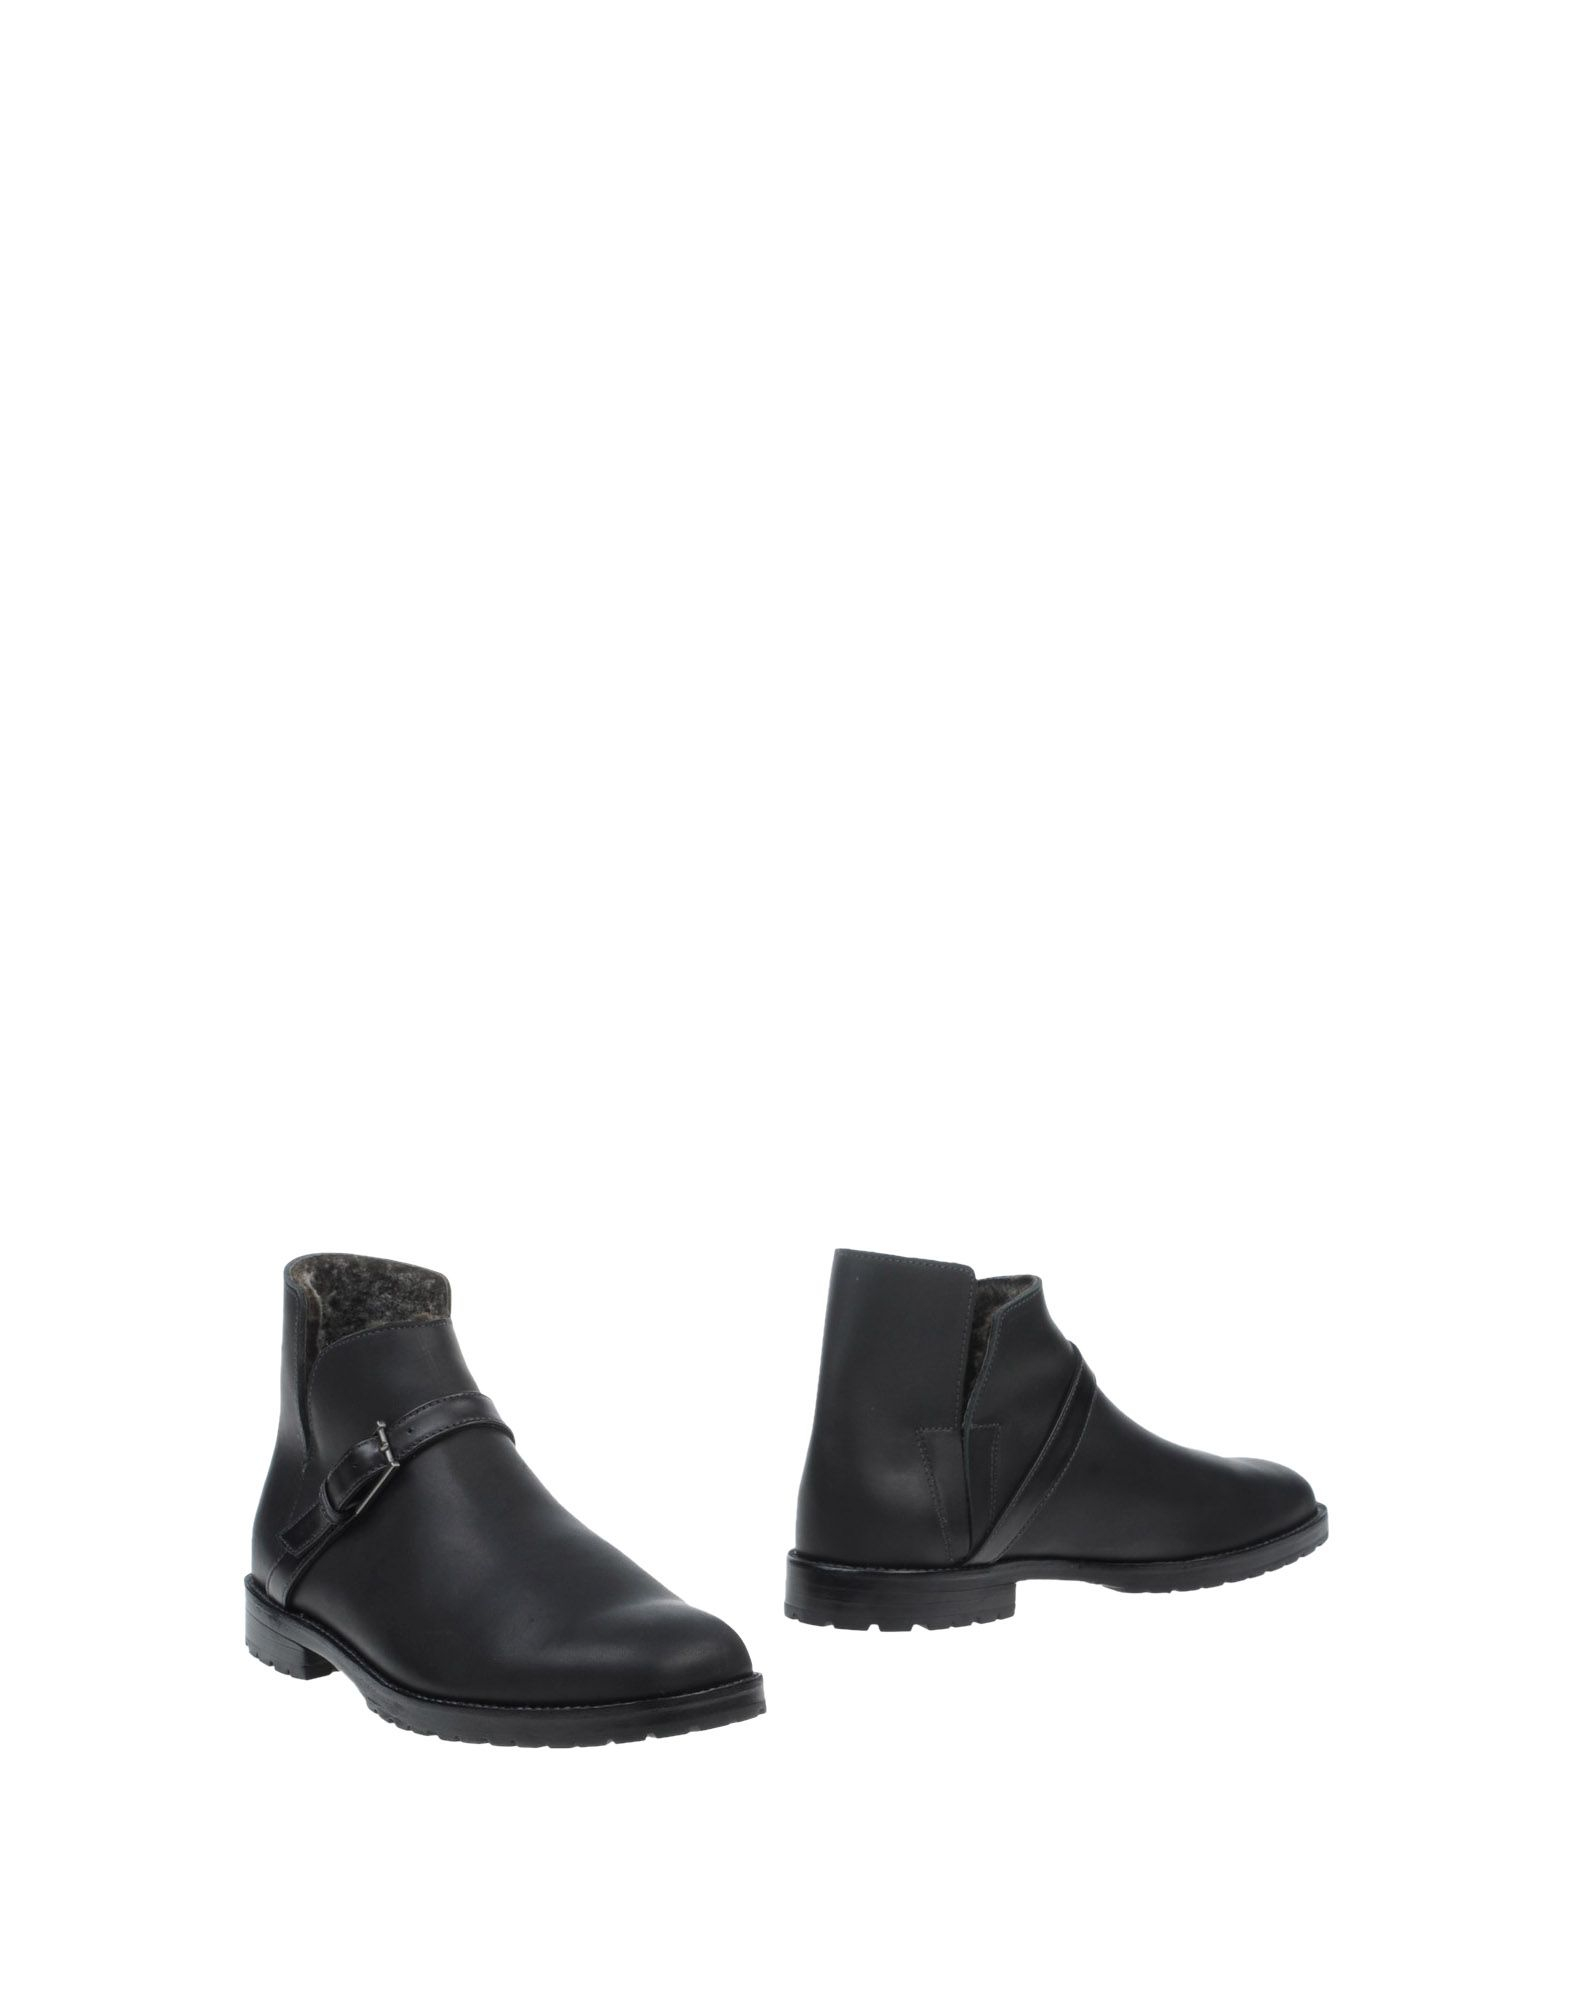 outlet where can you find NEWBARK Ankle boots original online buy cheap footaction marketable many kinds of for sale 6wGchuhJQl